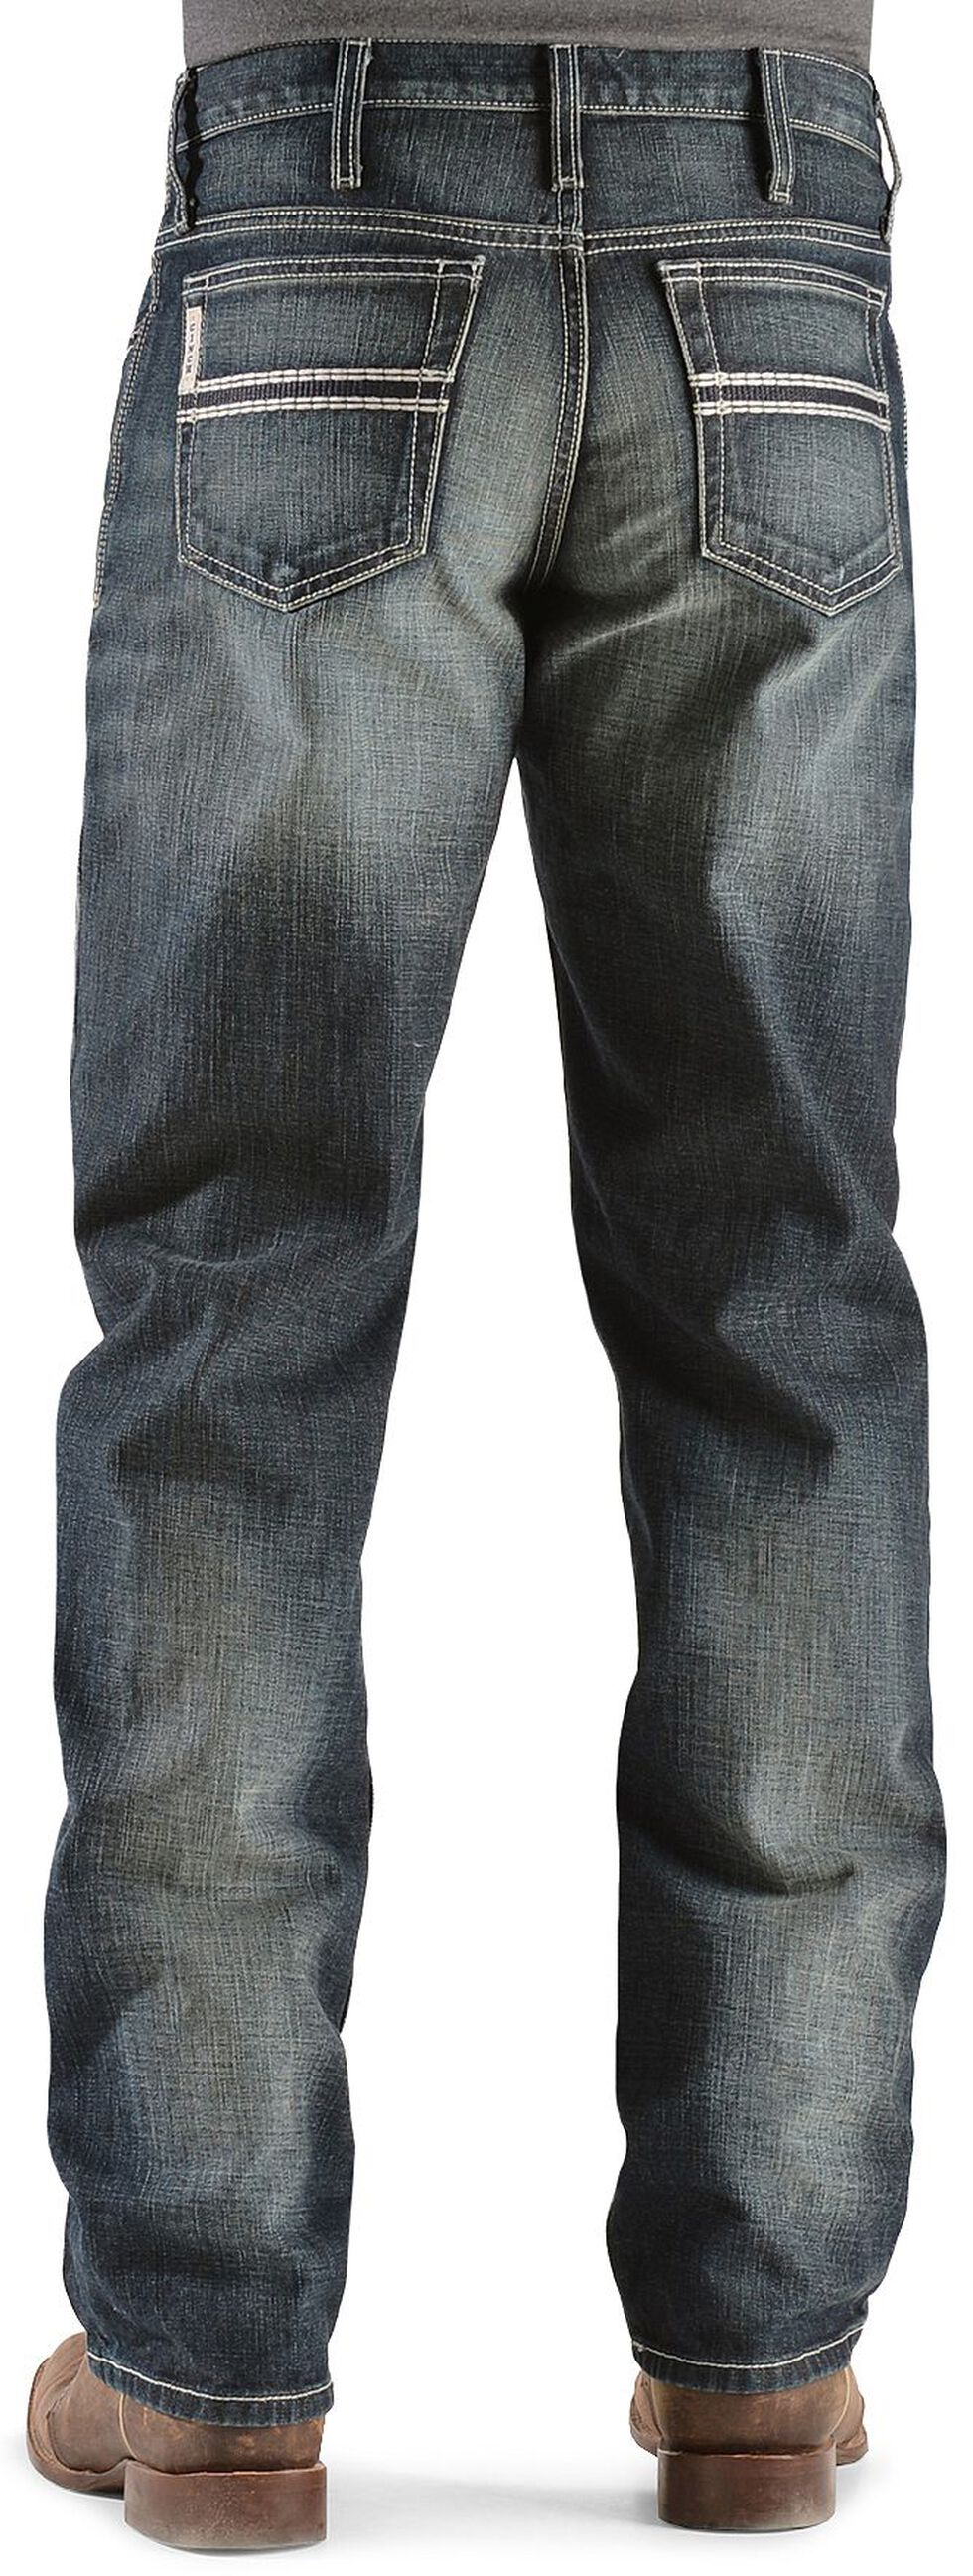 Cinch White Label Relaxed Fit Mid-Rise Jeans Dark Stonewash, Dark Stone, hi-res